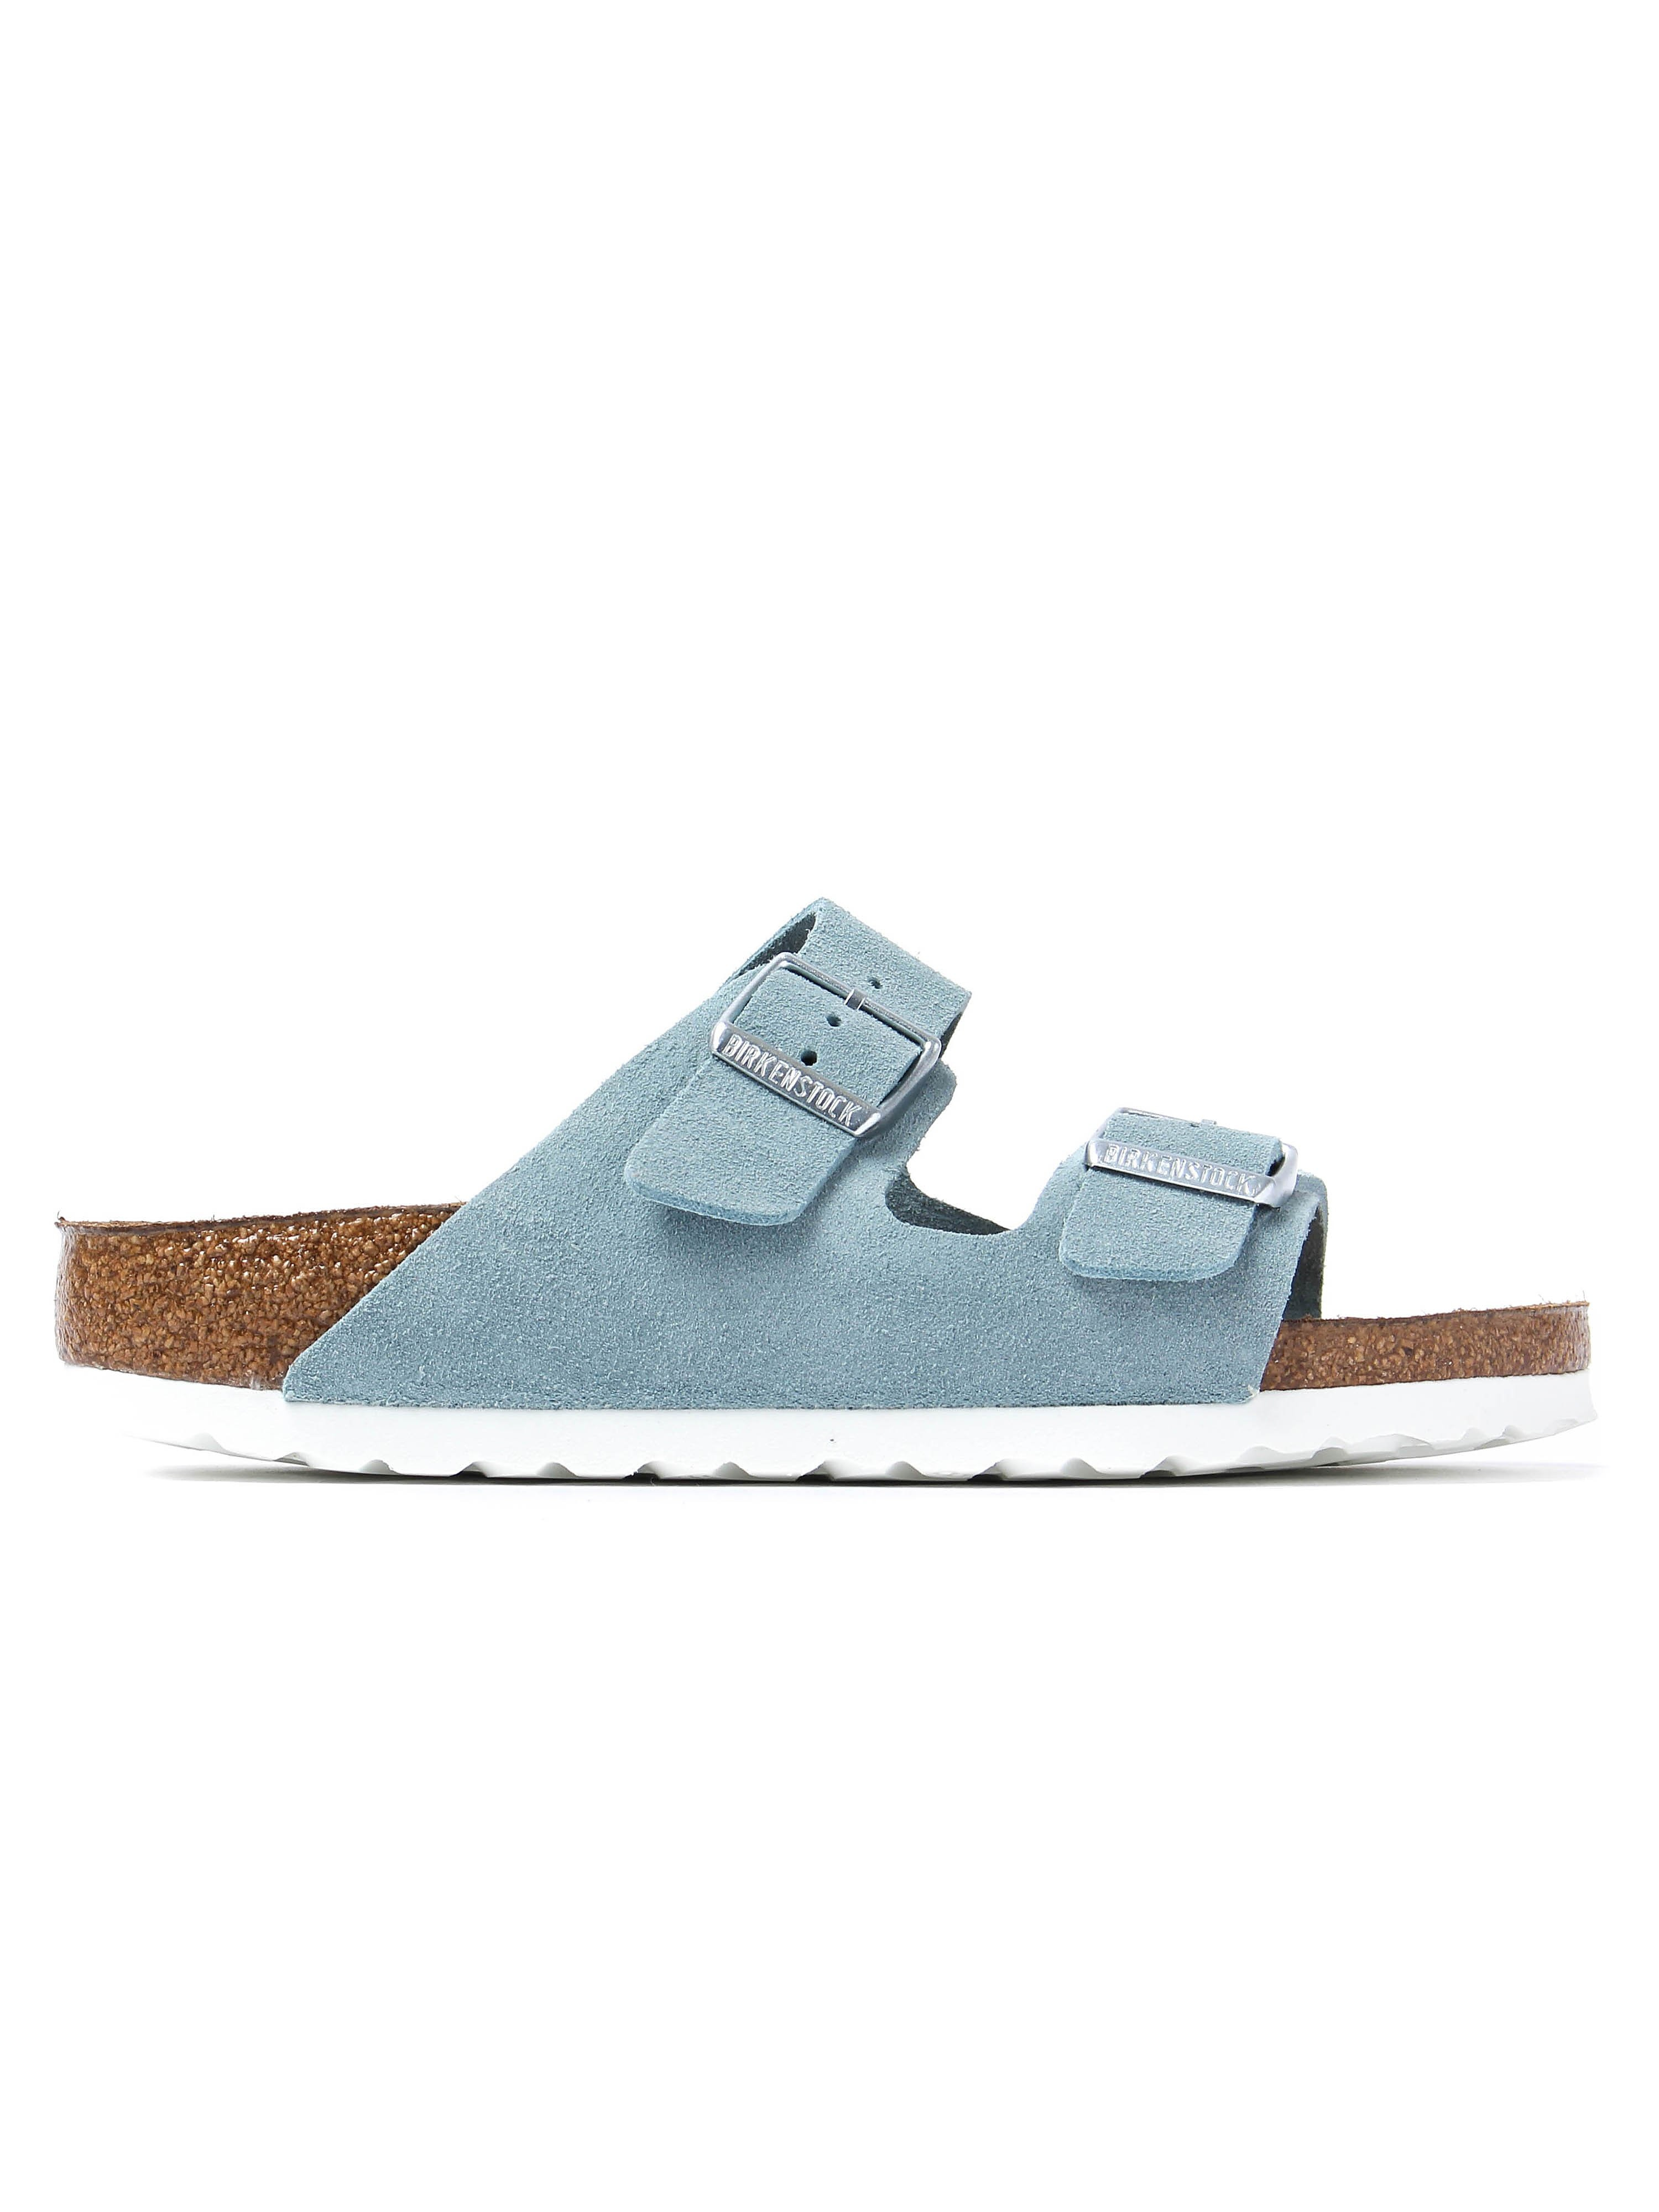 Birkenstock Women's Arizona Narrow Fit Sandals - Light Blue Suede